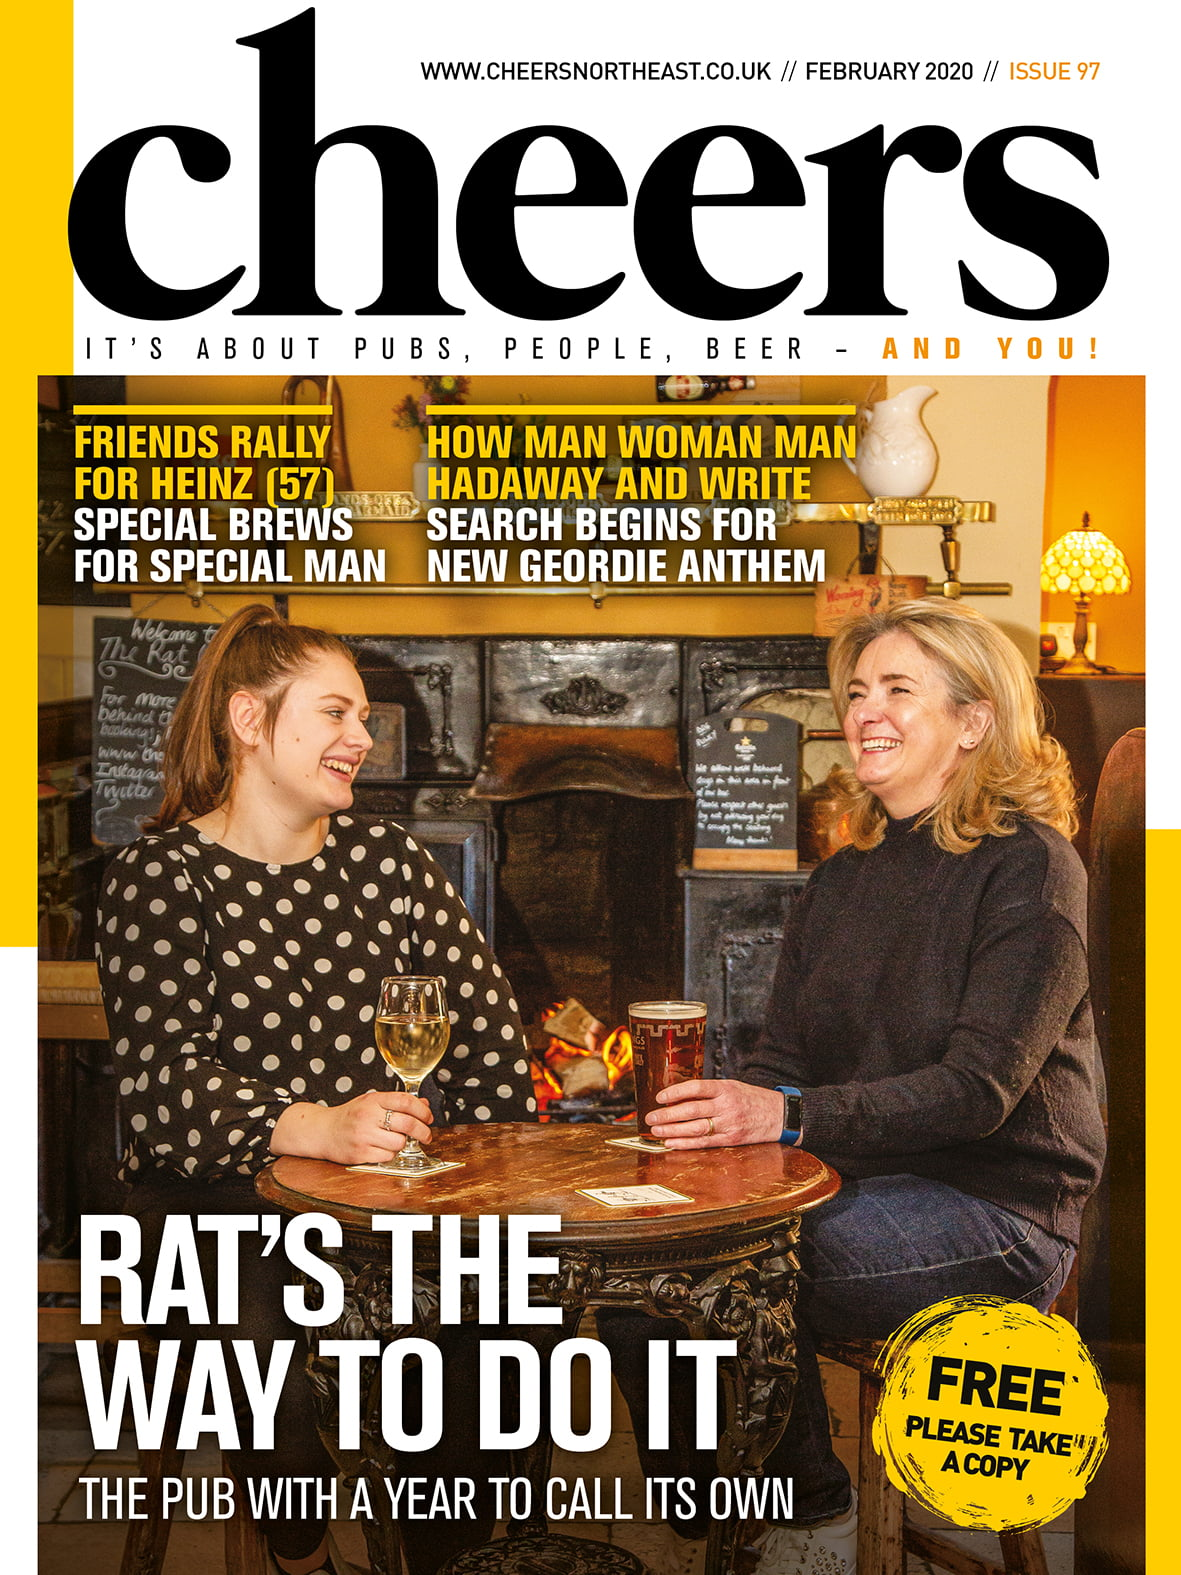 Cheers issue 97